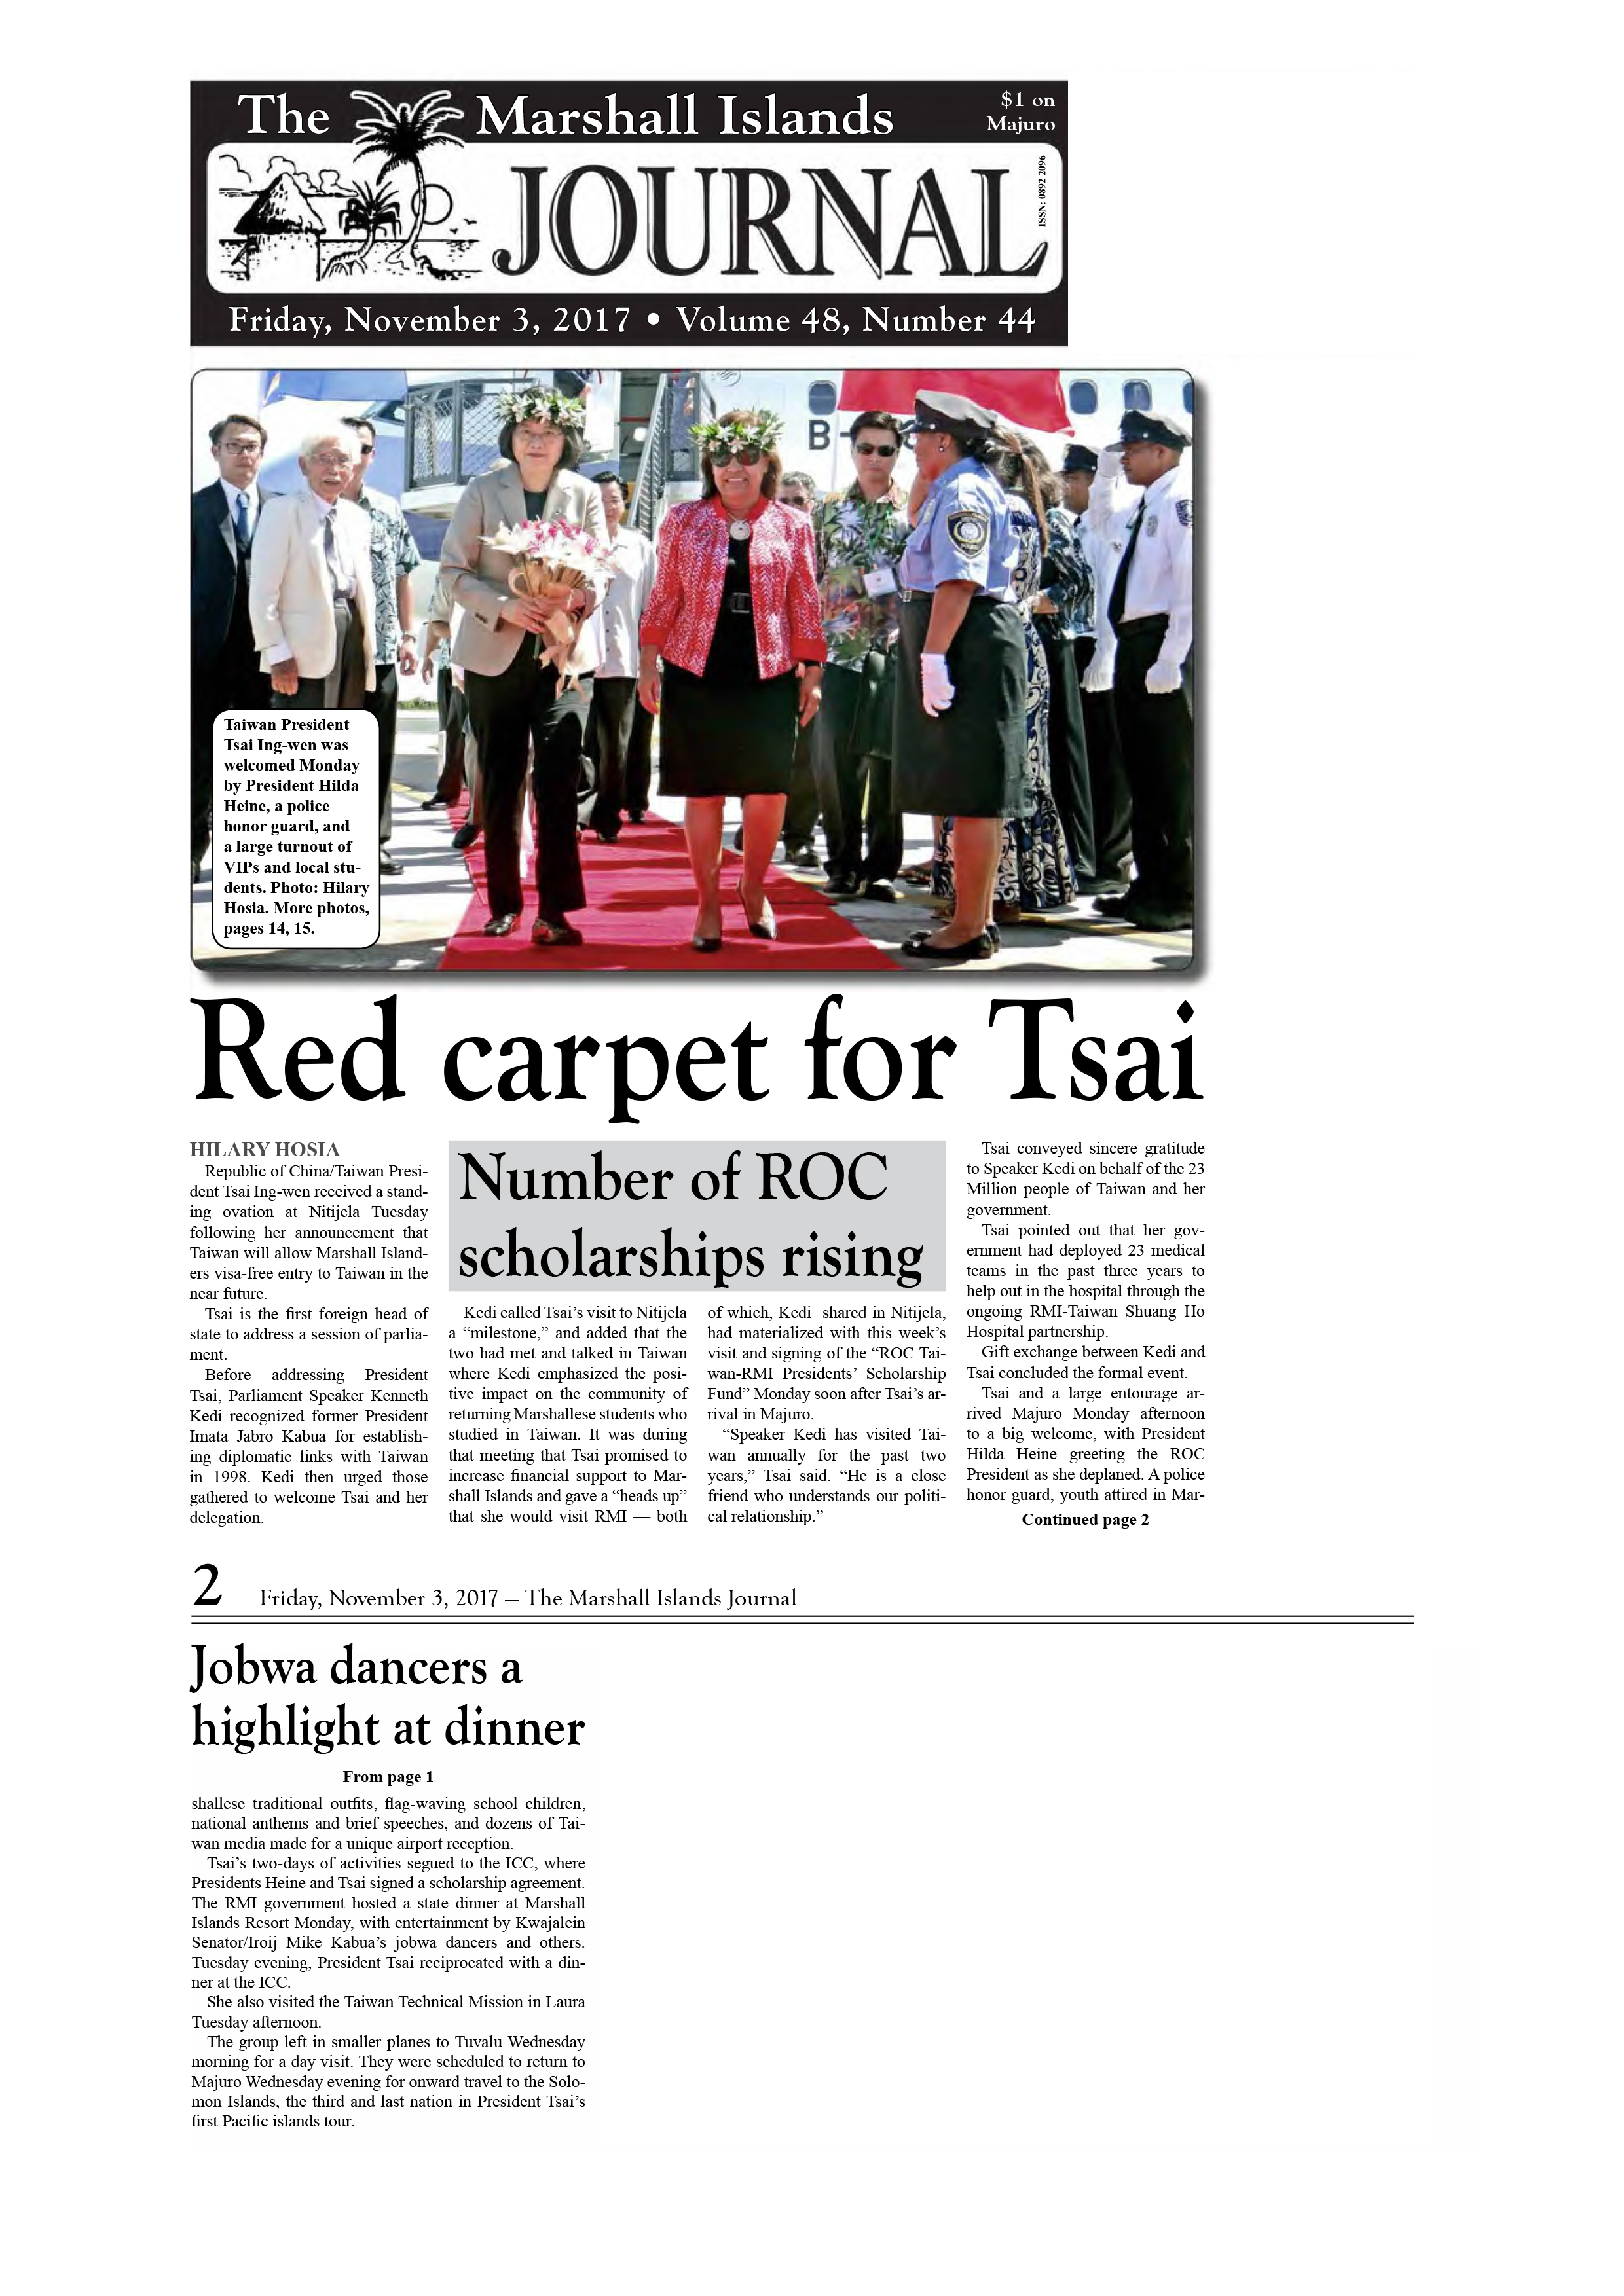 Red carpet for Tsai. Number of ROC scholarships rising